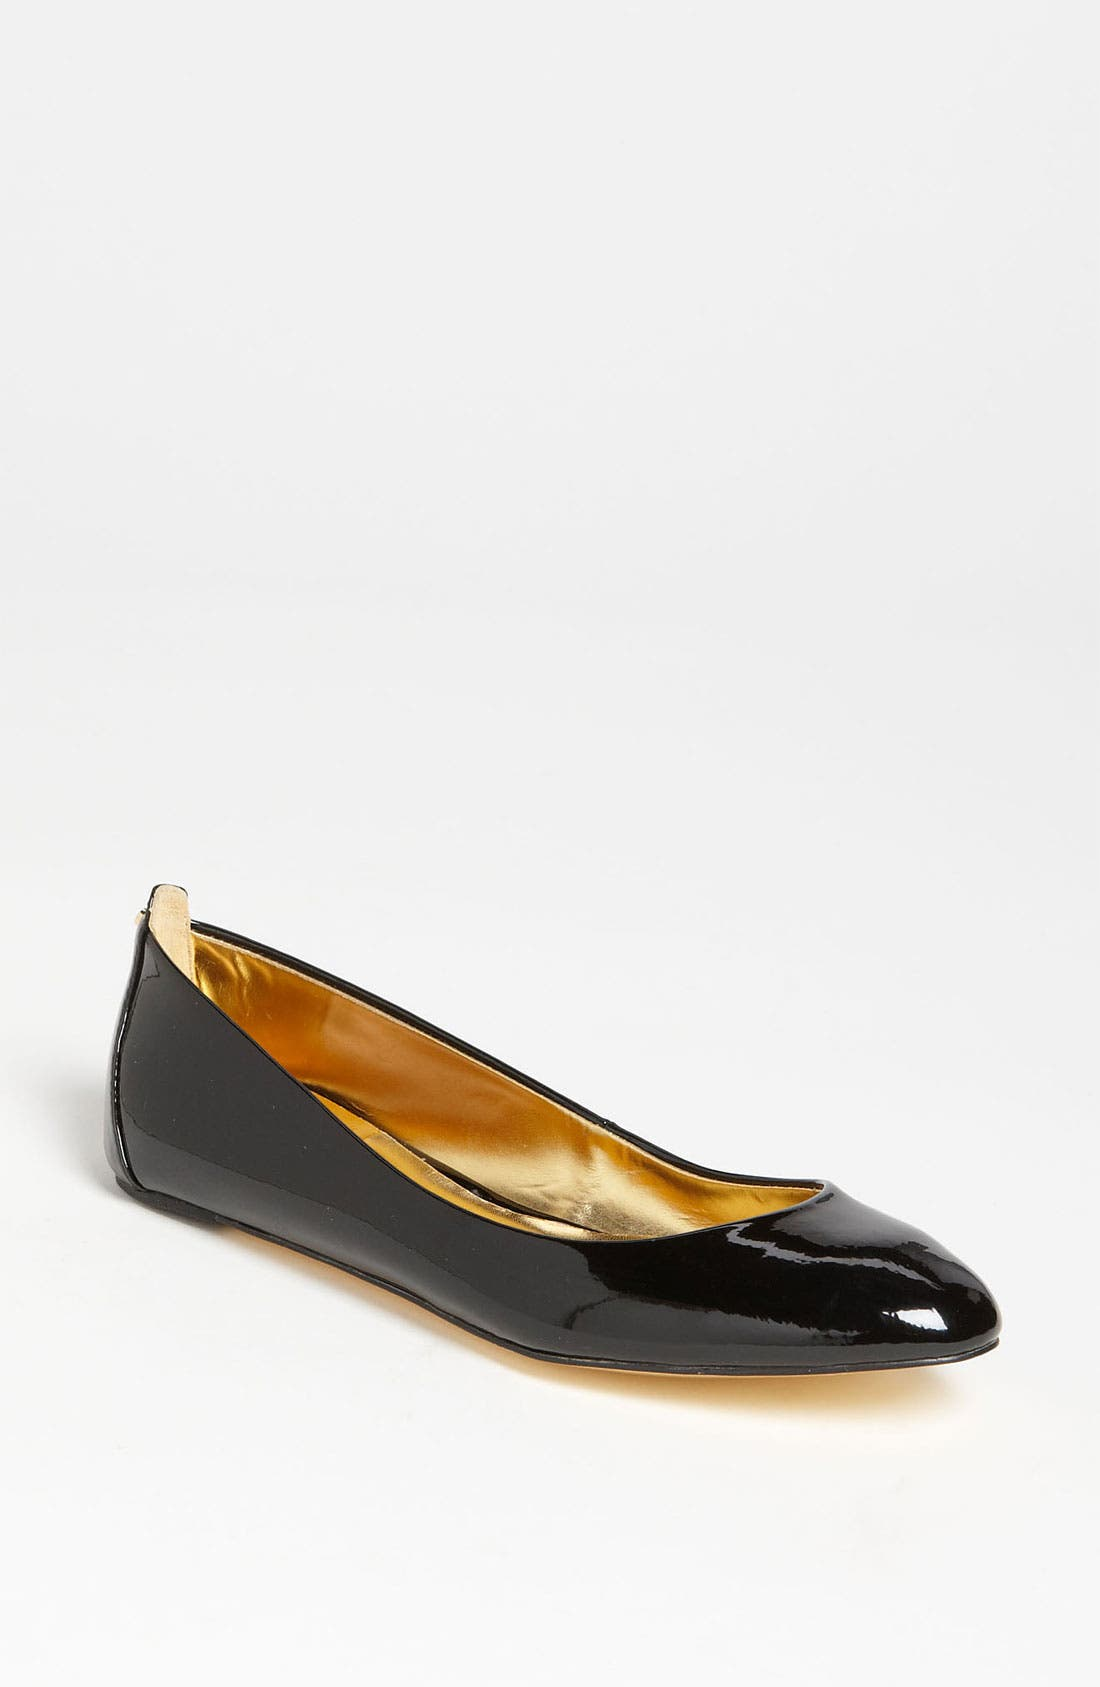 Alternate Image 1 Selected - Ted Baker London 'Carum 2' Flat